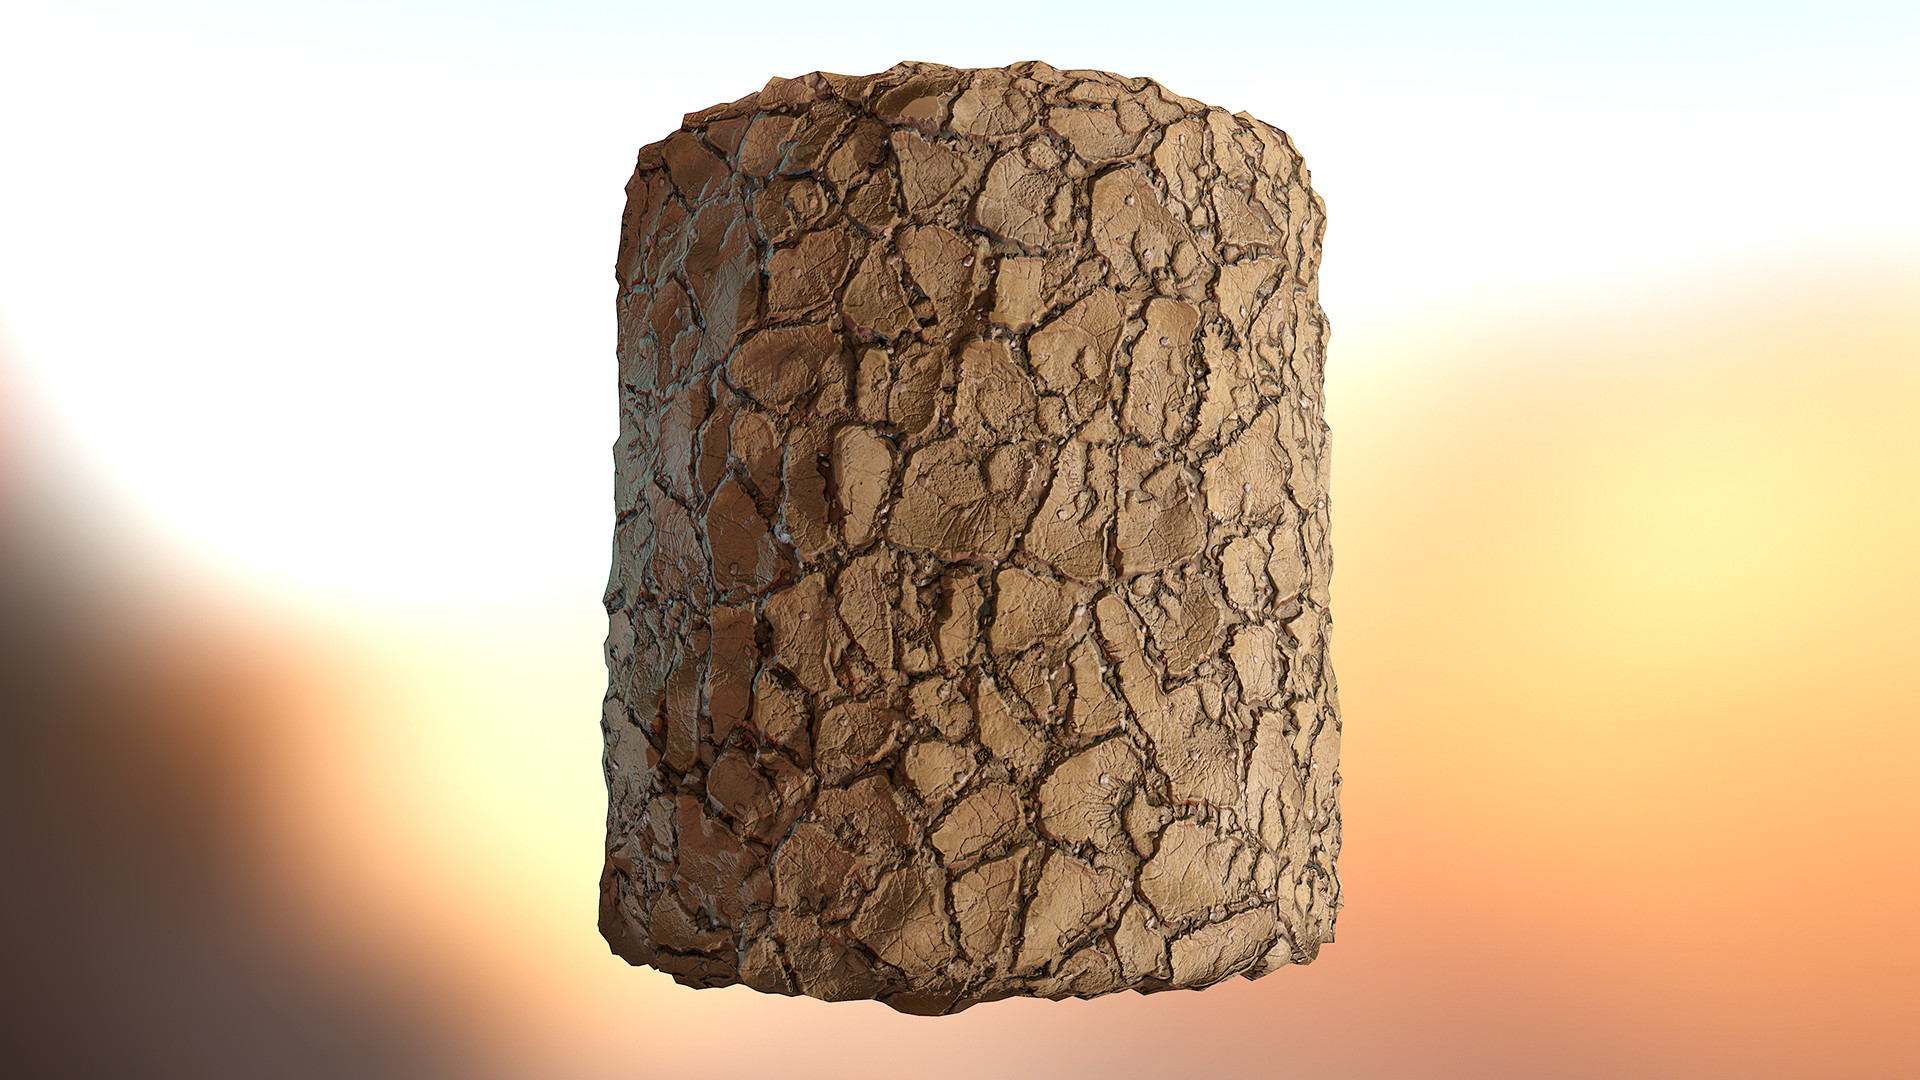 Olle norling dried mud render 2